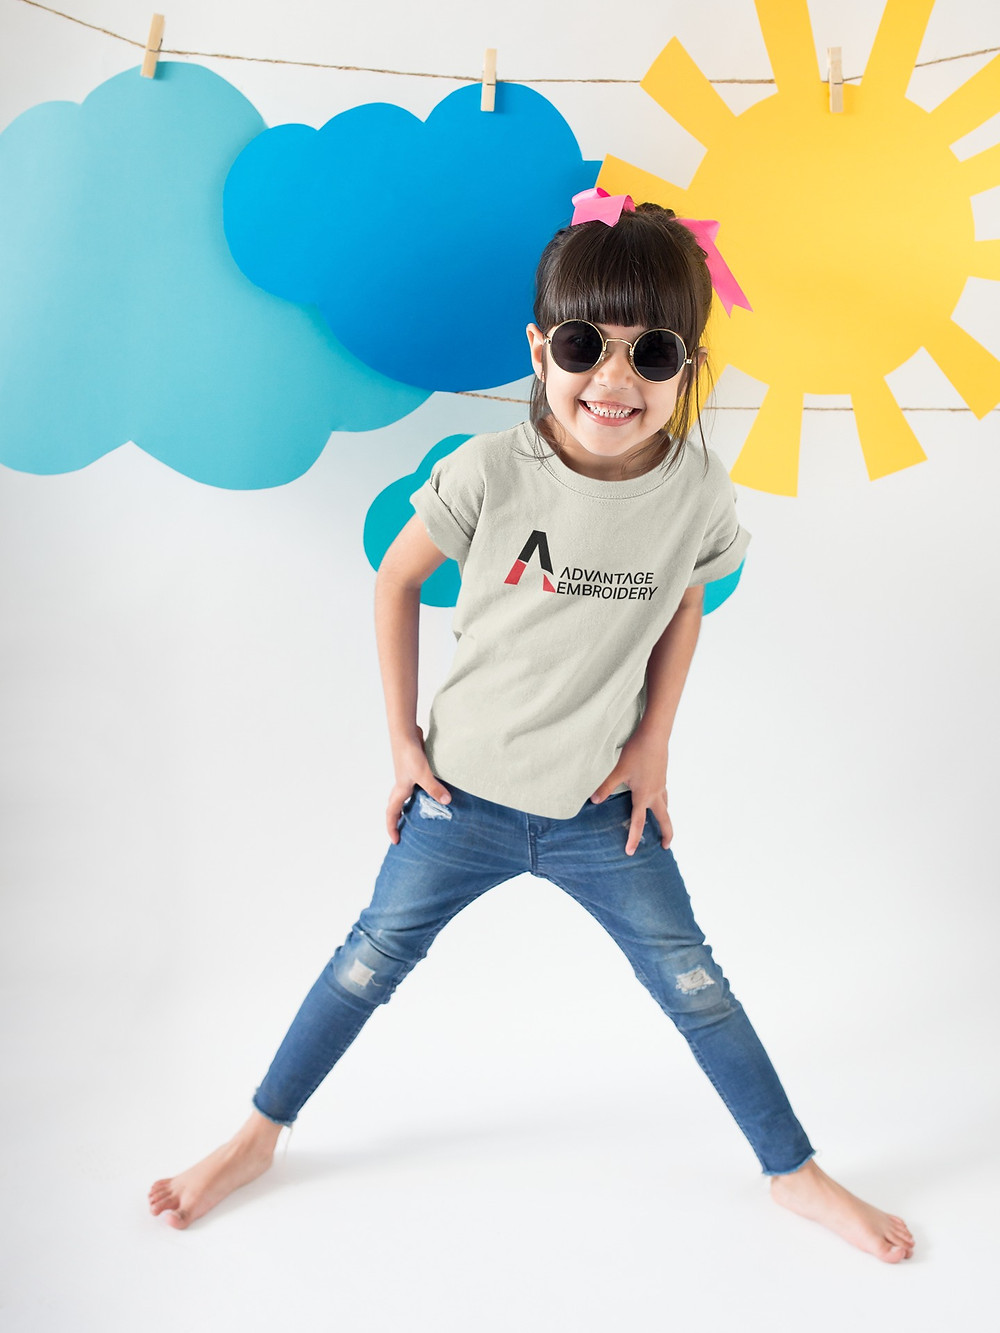 A young girl plays in sunglasses